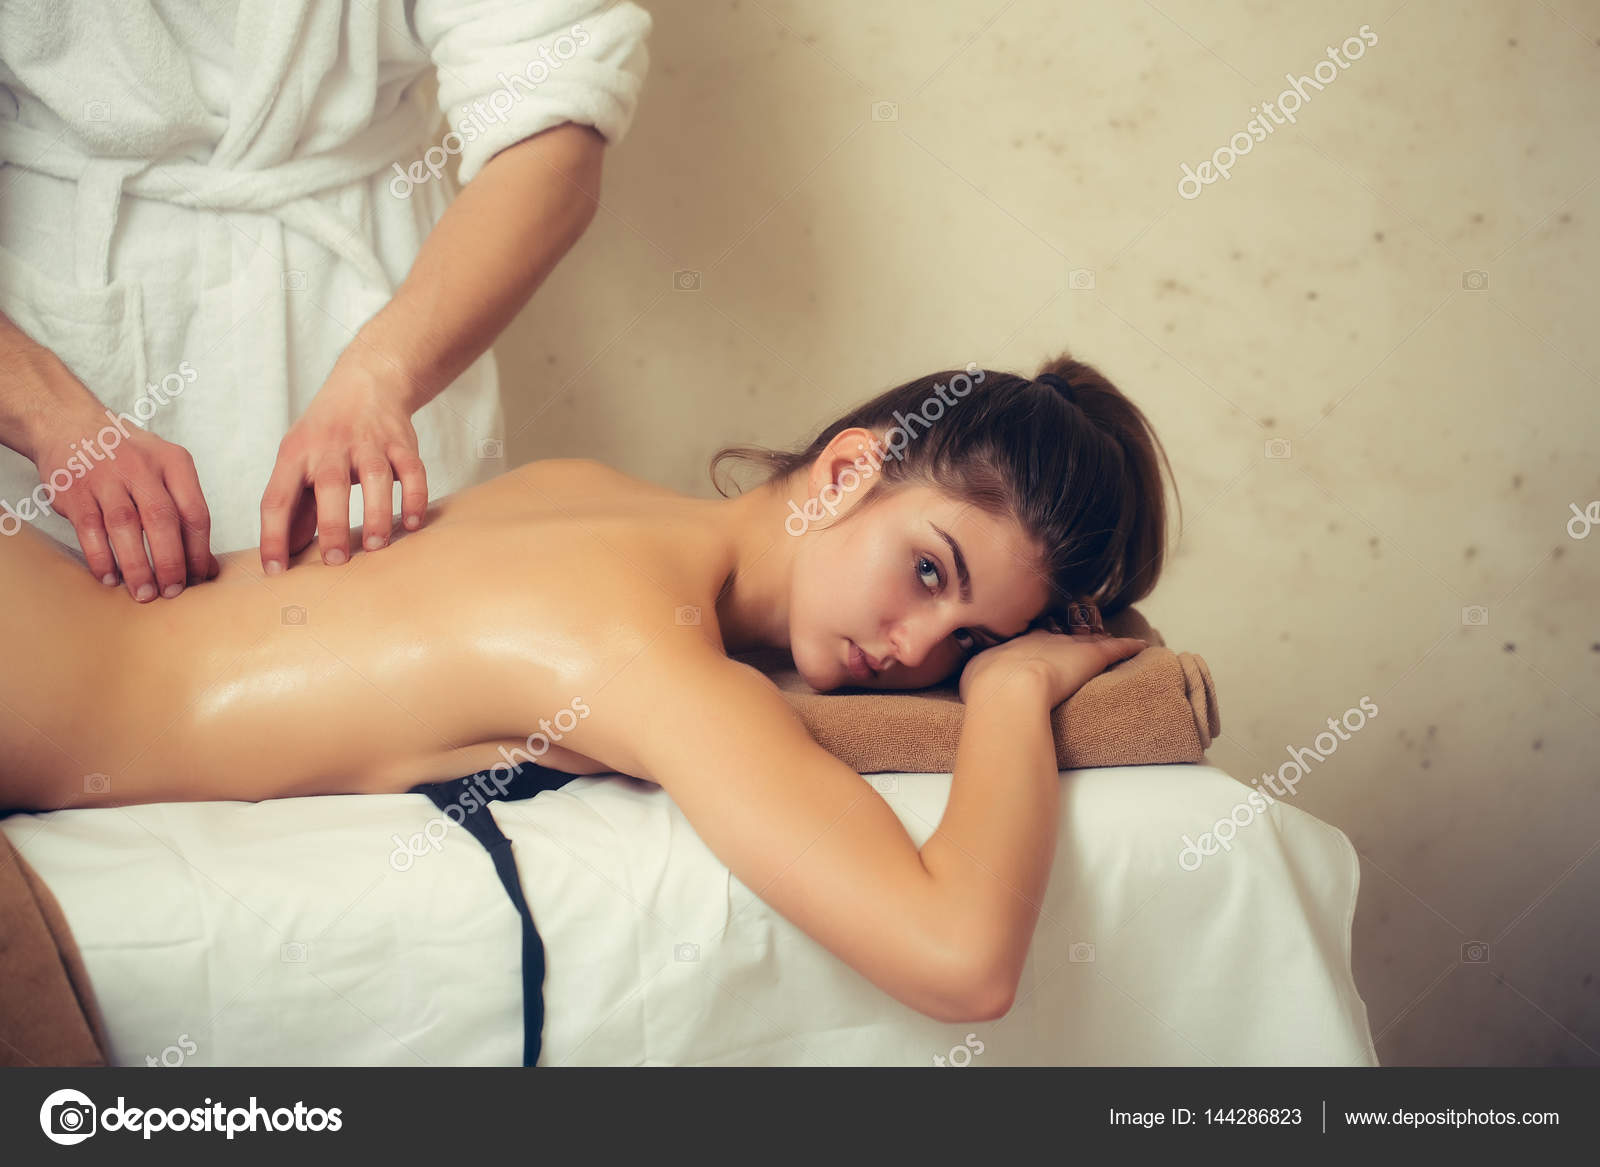 How to sexually massage a woman